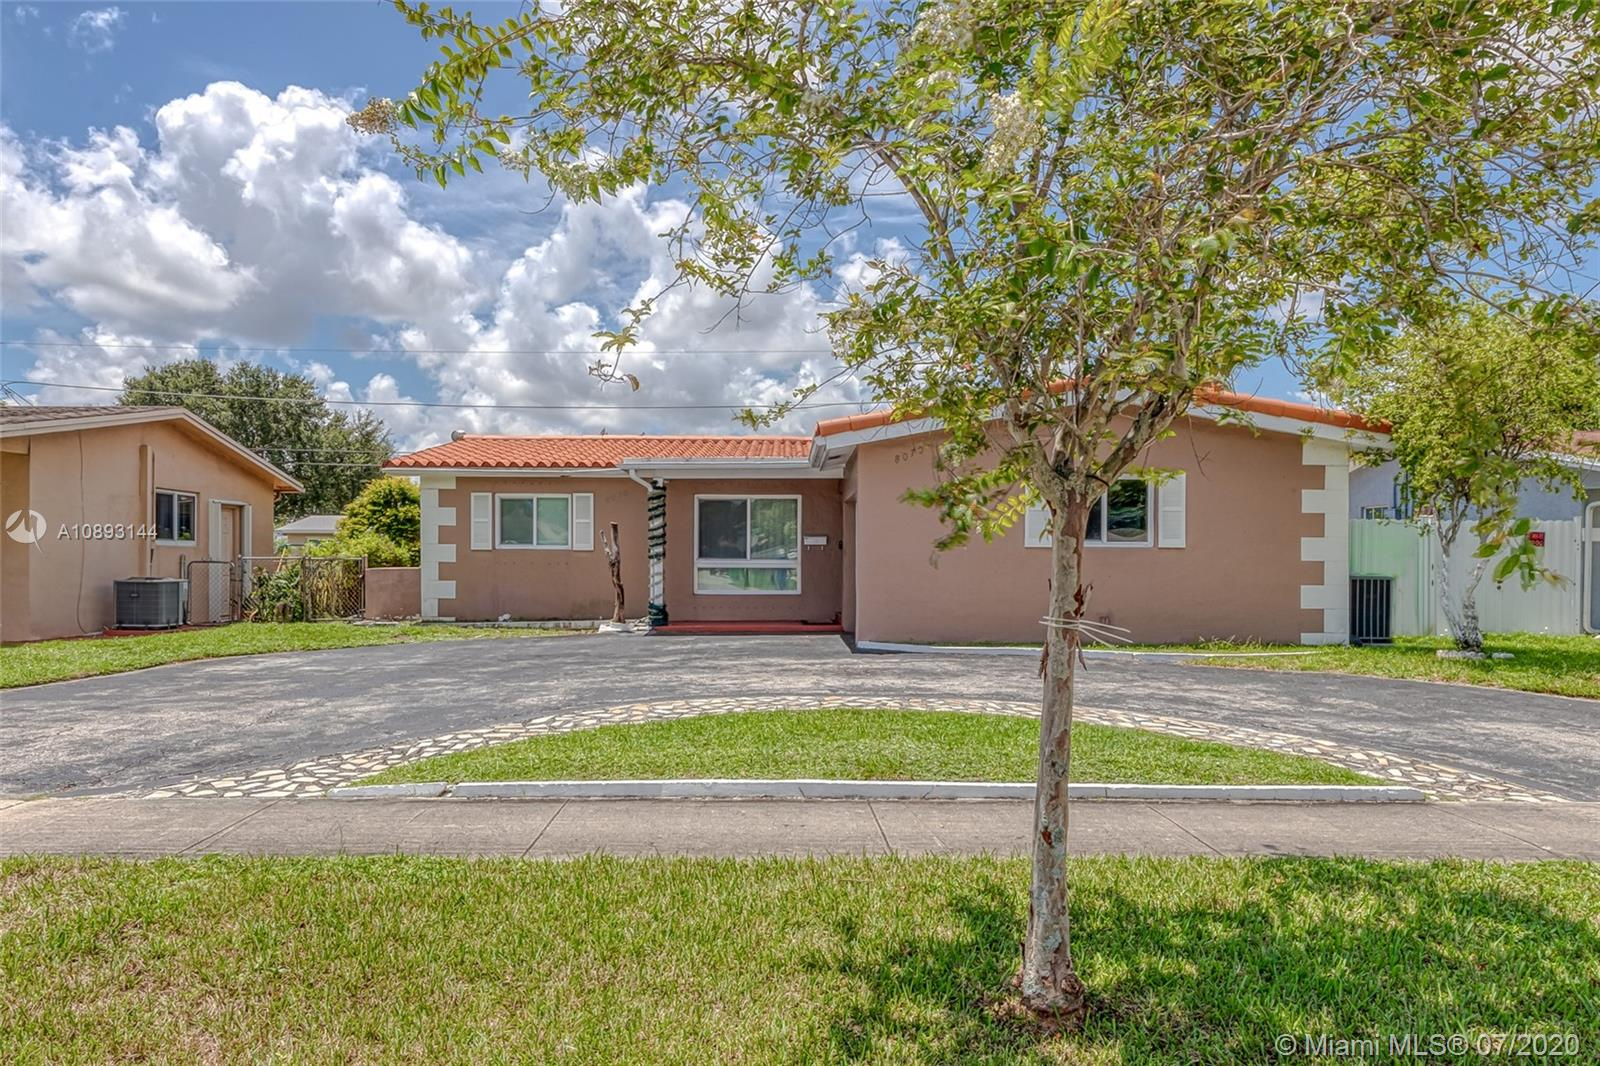 Sunrise Golf Village - 8070 Sunset Strip, Sunrise, FL 33322